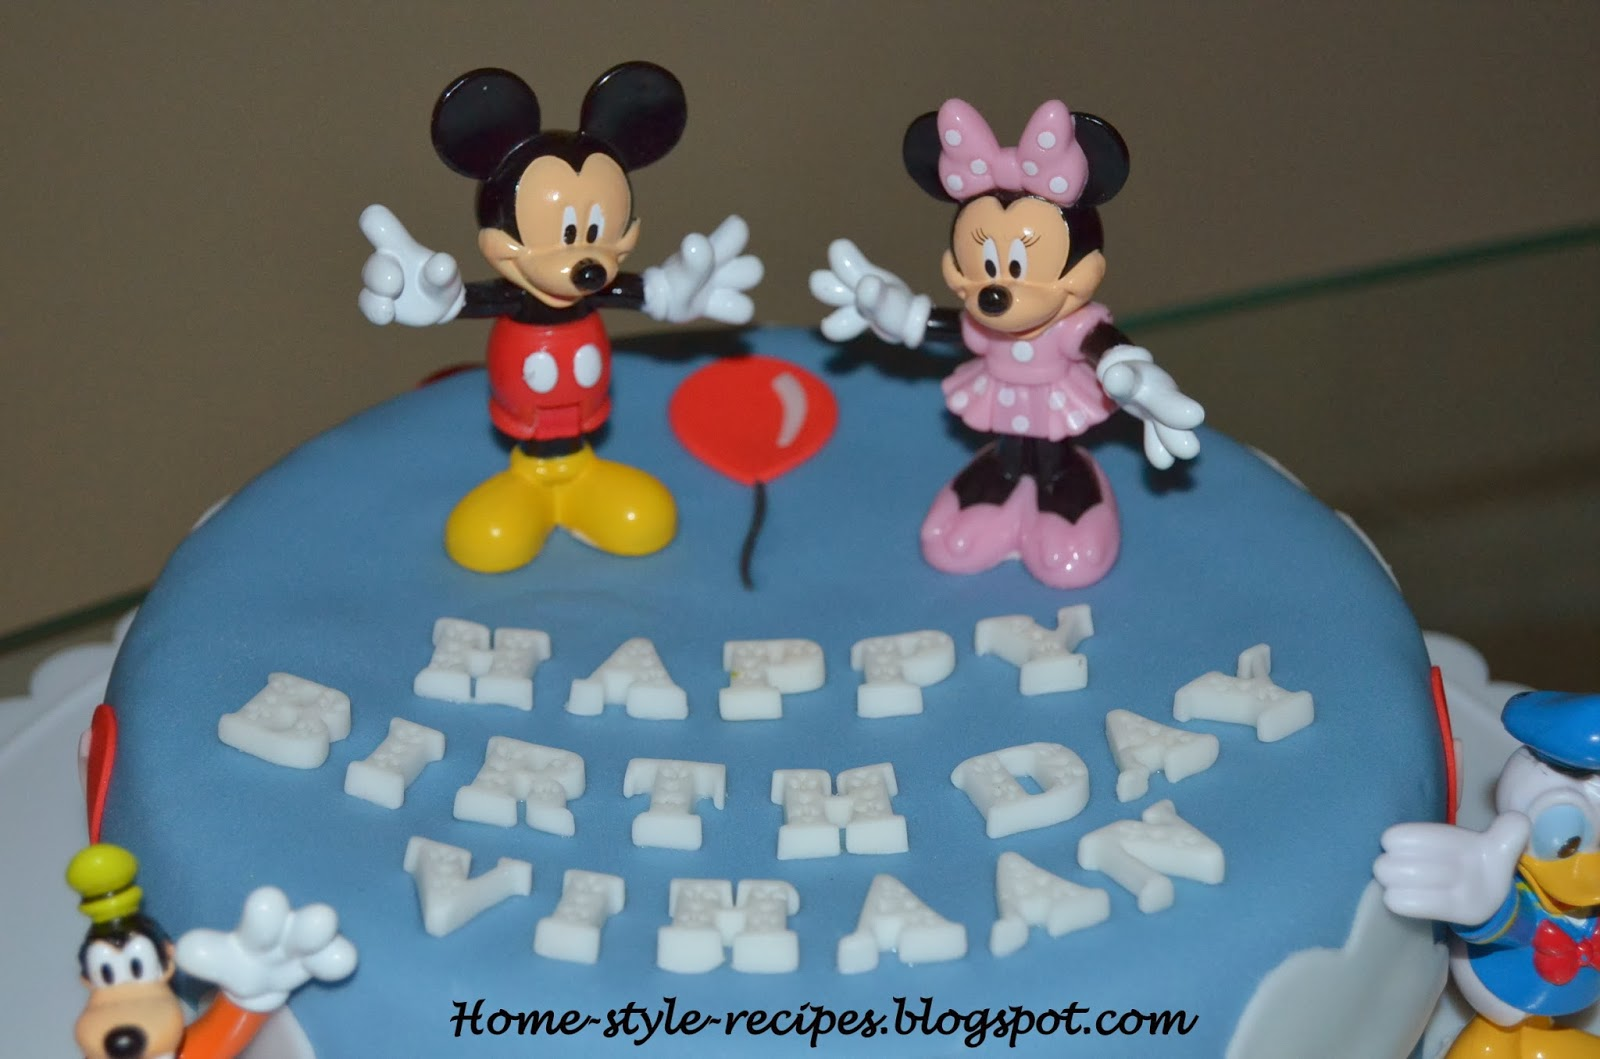 Share A Recipe Mickey Mouse Club House Cake